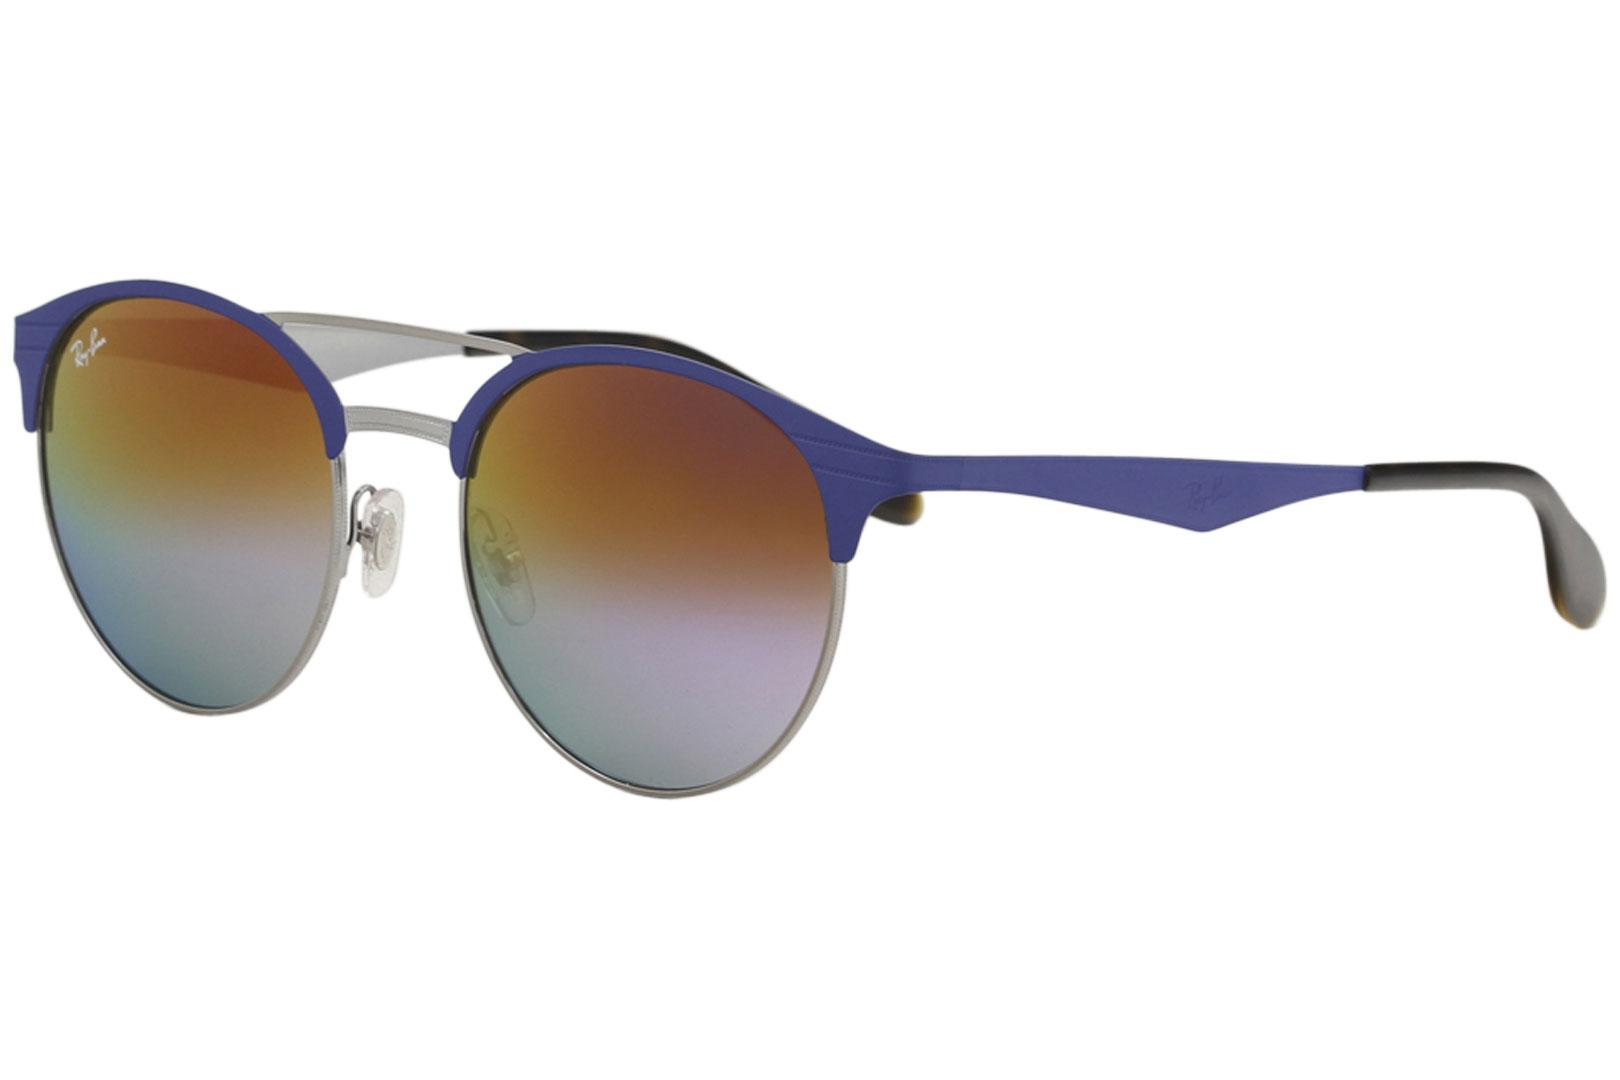 aeccd81c64 Ray Ban Men s RB3545 RB 3545 RayBan Fashion Pilot Sunglasses by Ray Ban